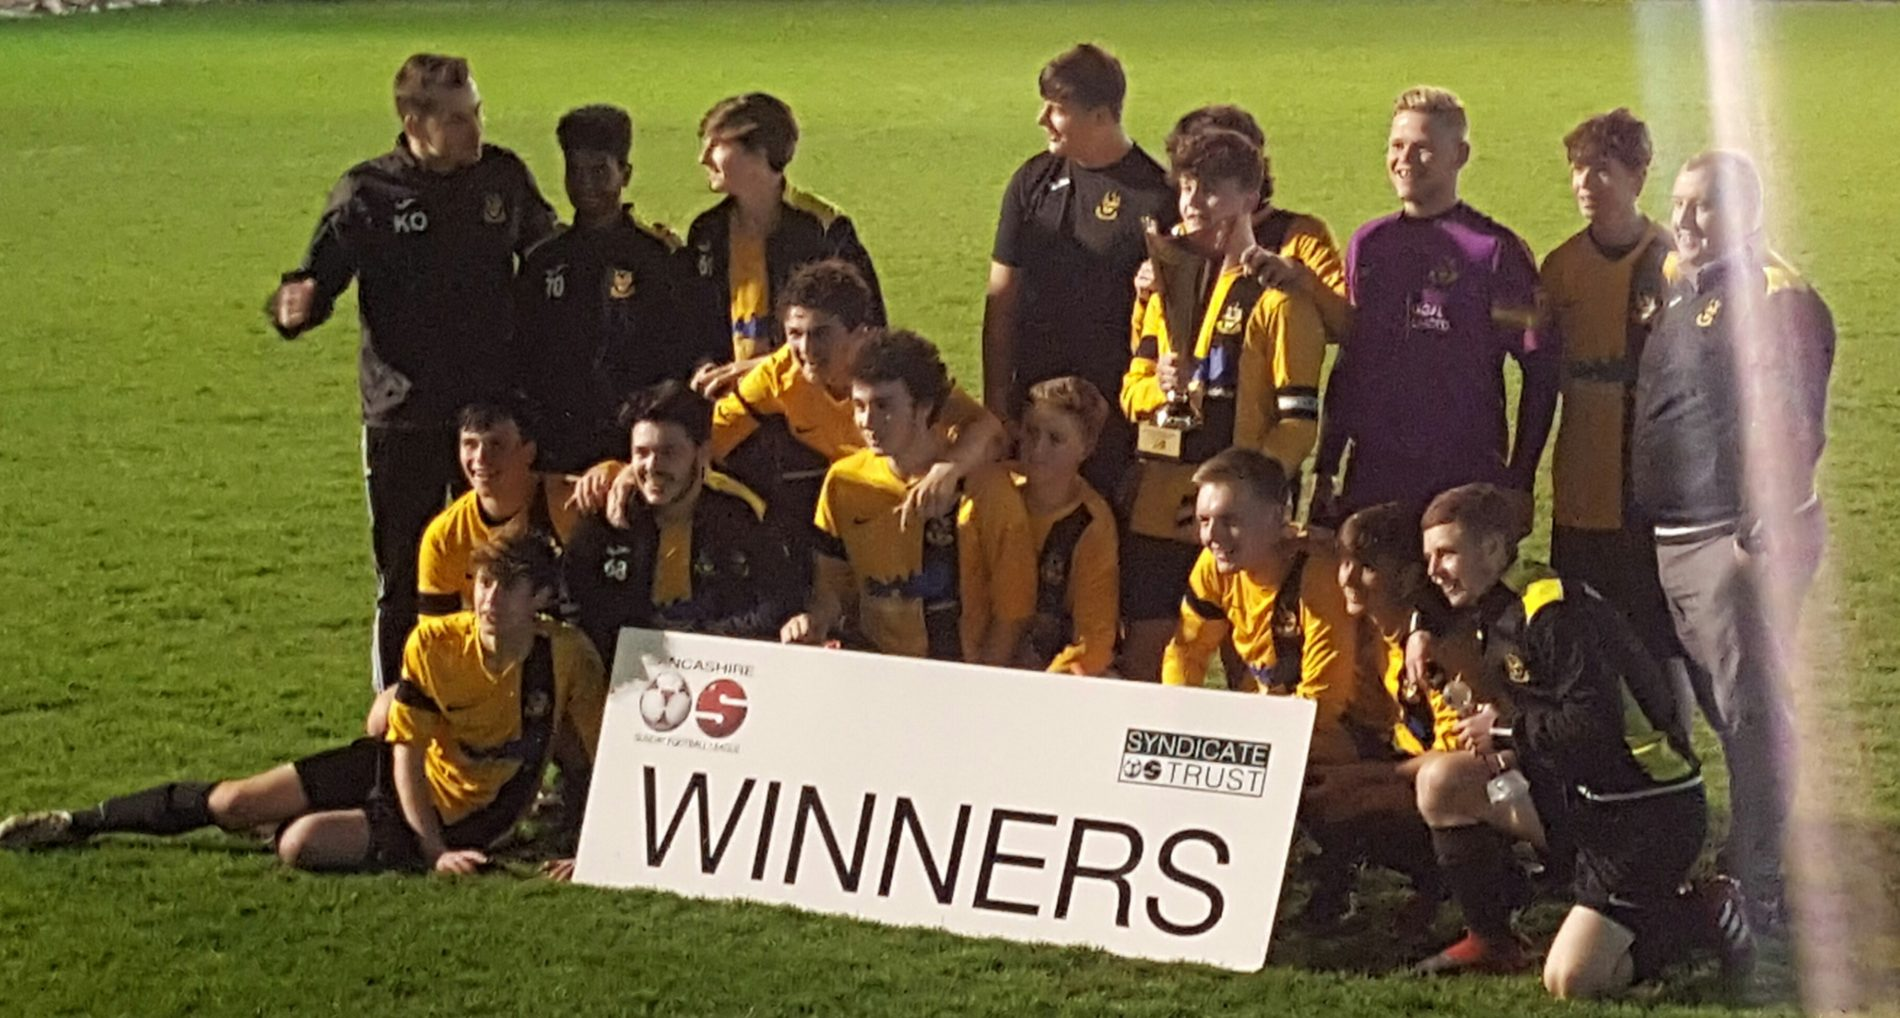 Under 17s win Syndicate Trophy